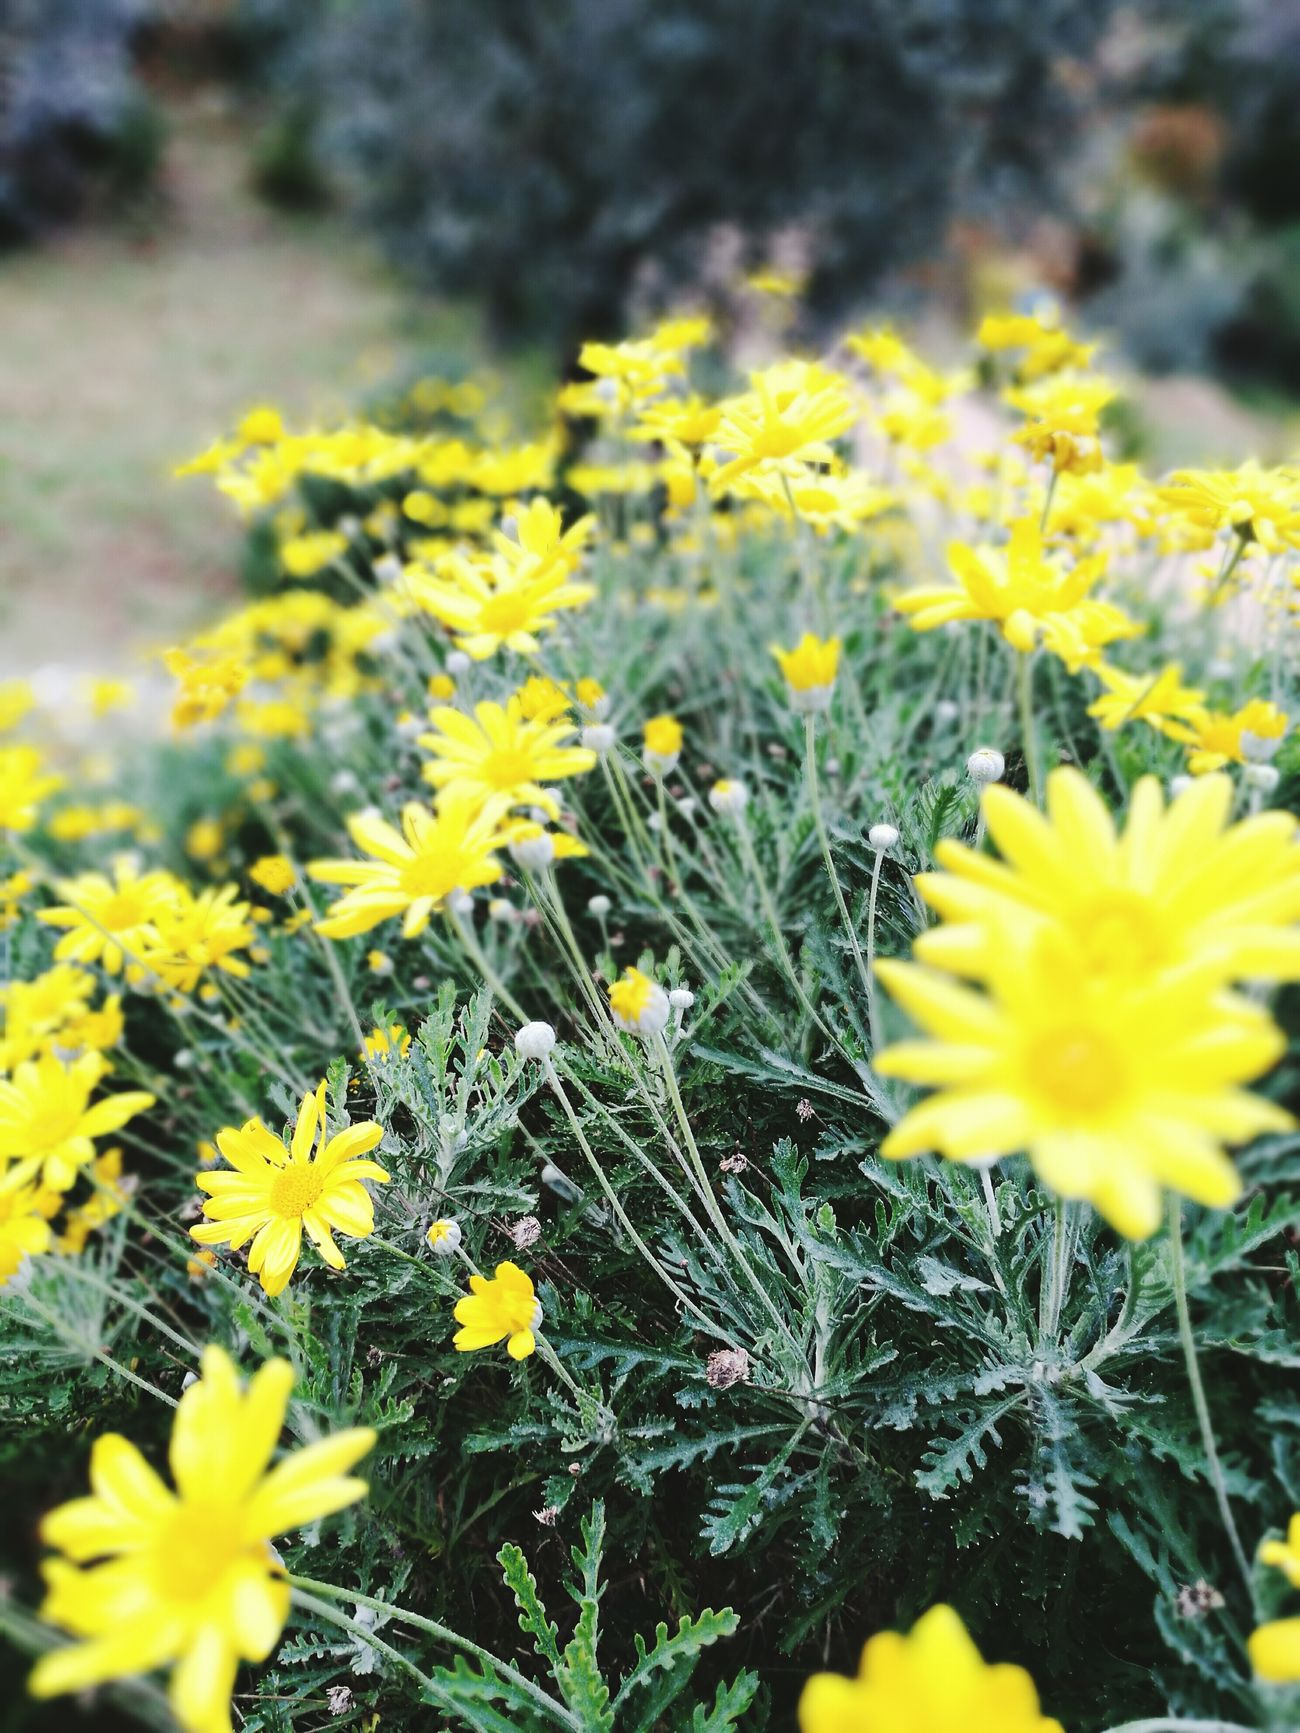 Yellow Flower Nature Landscspe Growth Plant Freshness No People Outdoors Beauty In Nature Close-up Fragility Flower Head Day